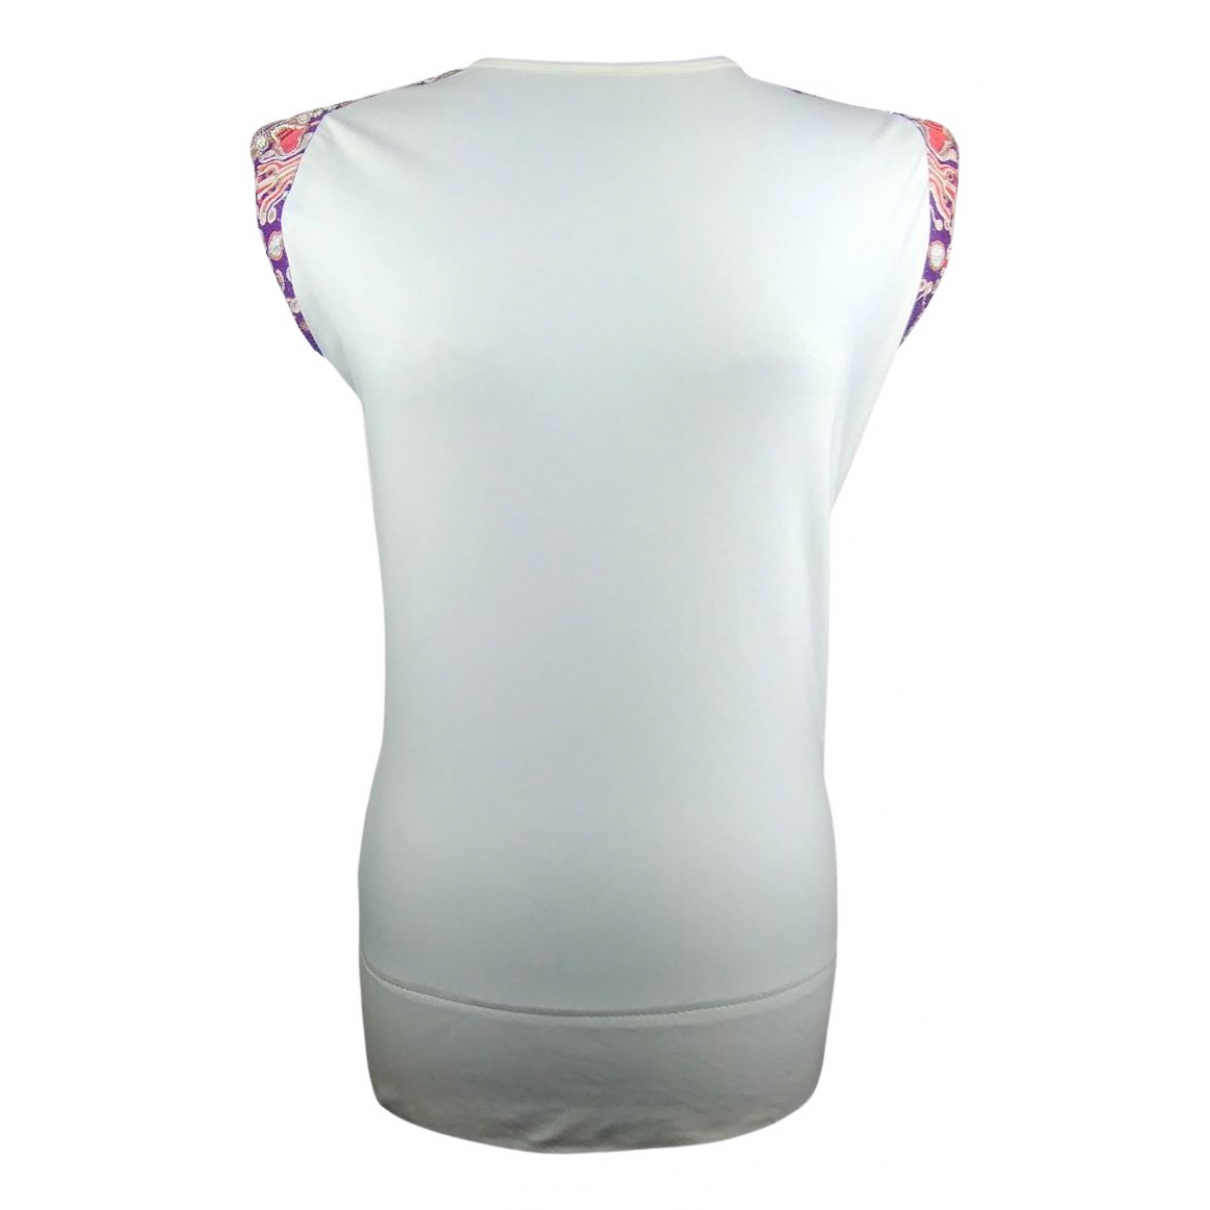 Fendi \N White Cotton  top for Women 40 IT